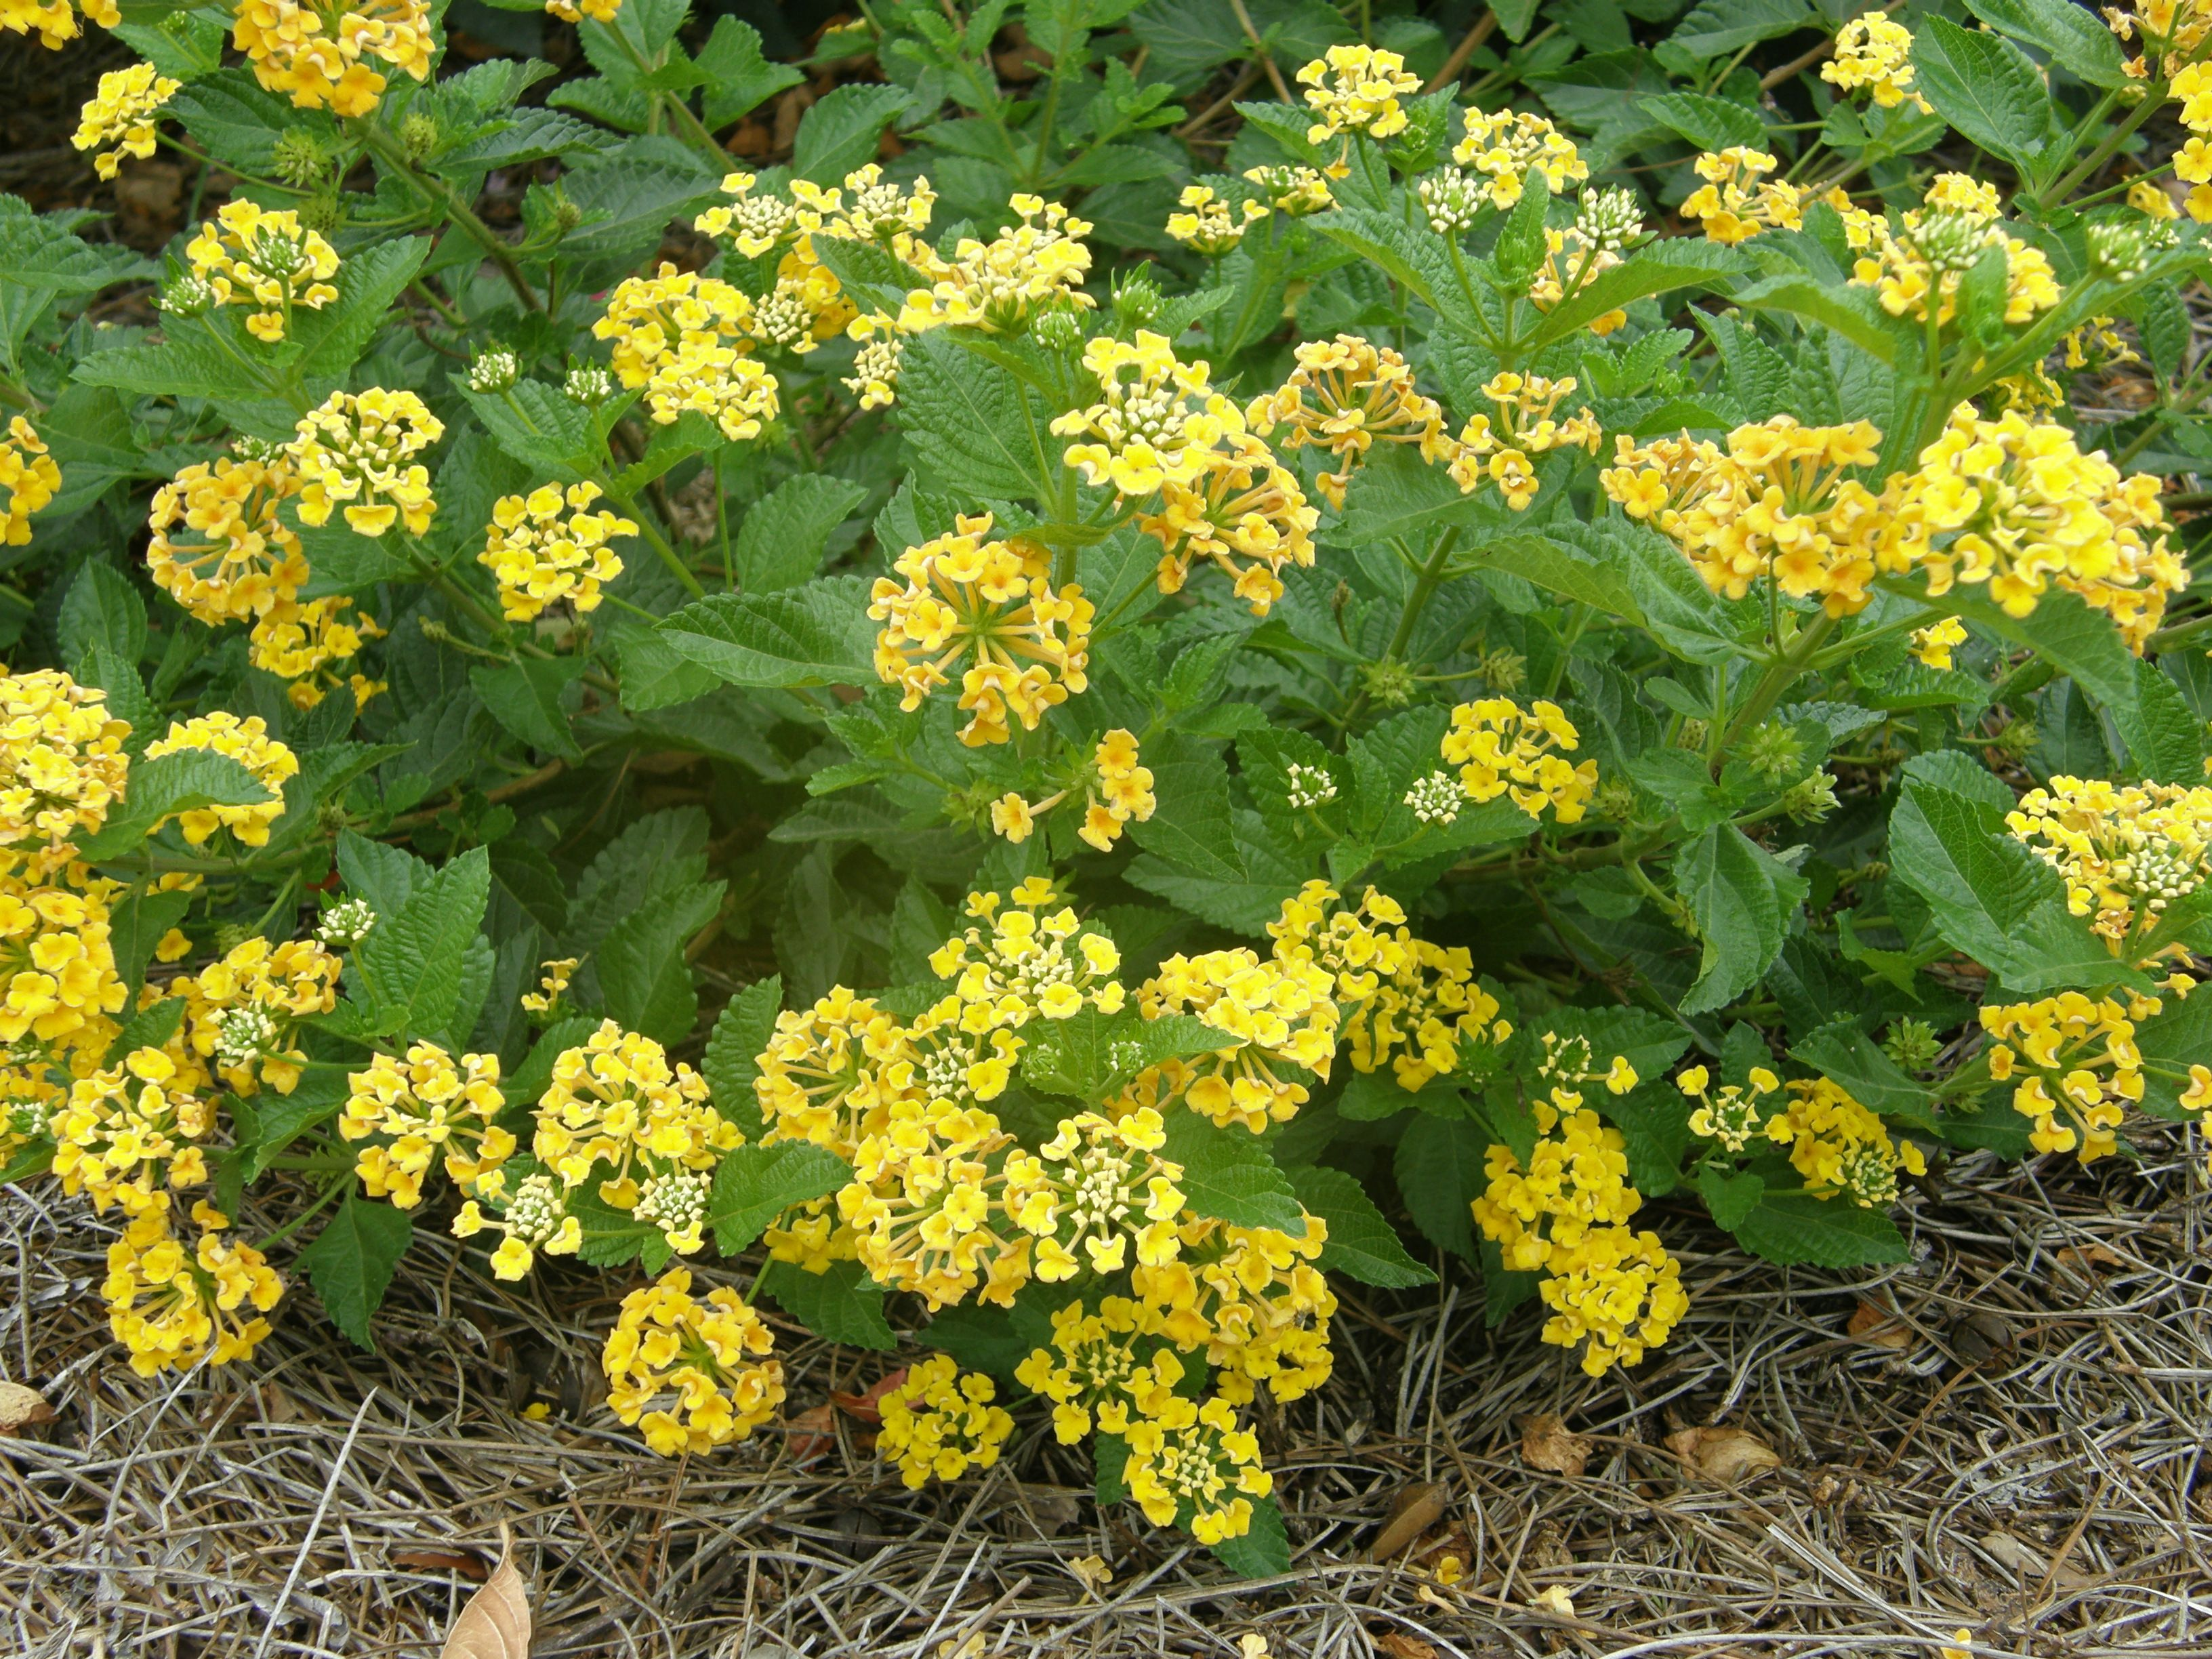 Lantana Colorful And Drought Tolerant Lantana Drought Tolerant Lawn And Garden